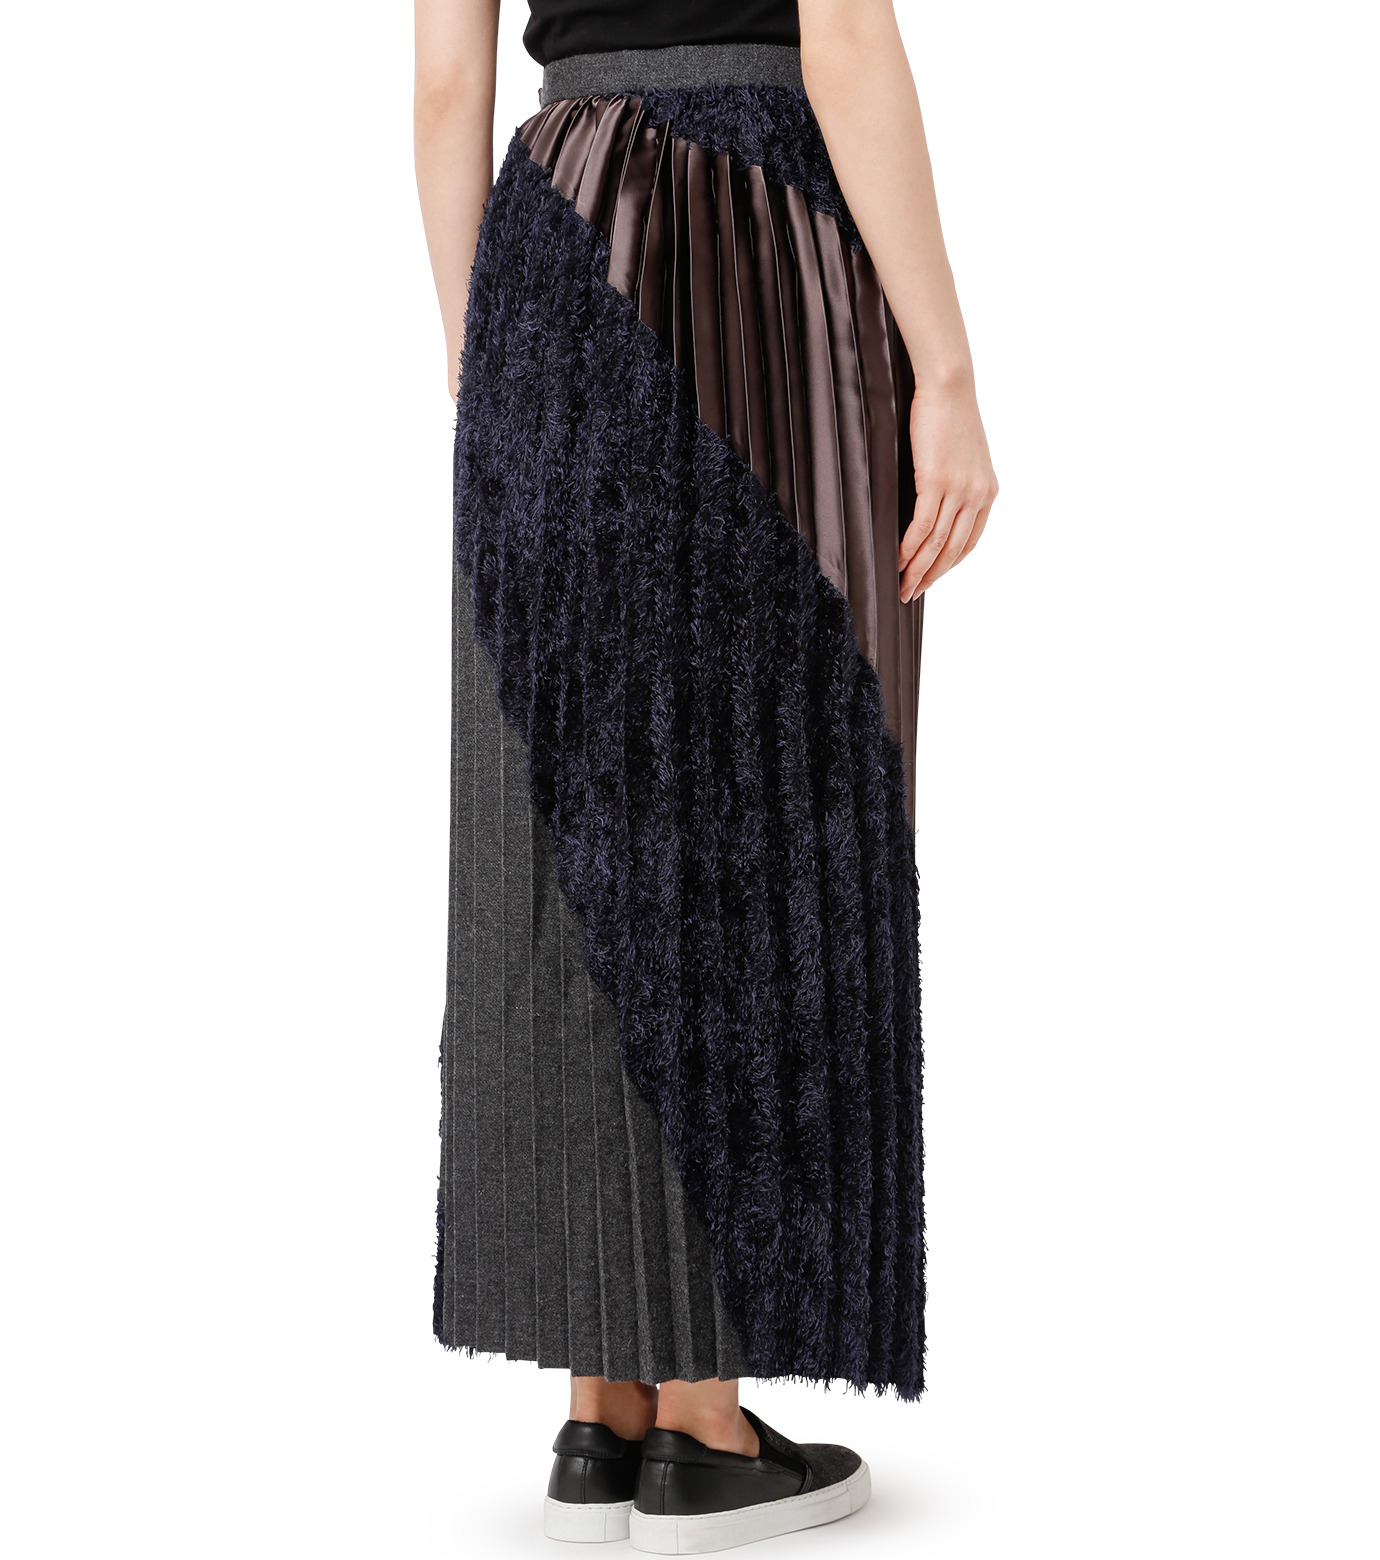 KOLOR(カラー)のLong Pleated Skirt Mixed Jacquard-NAVY(スカート/skirt)-16WCL-S03129-93 拡大詳細画像2